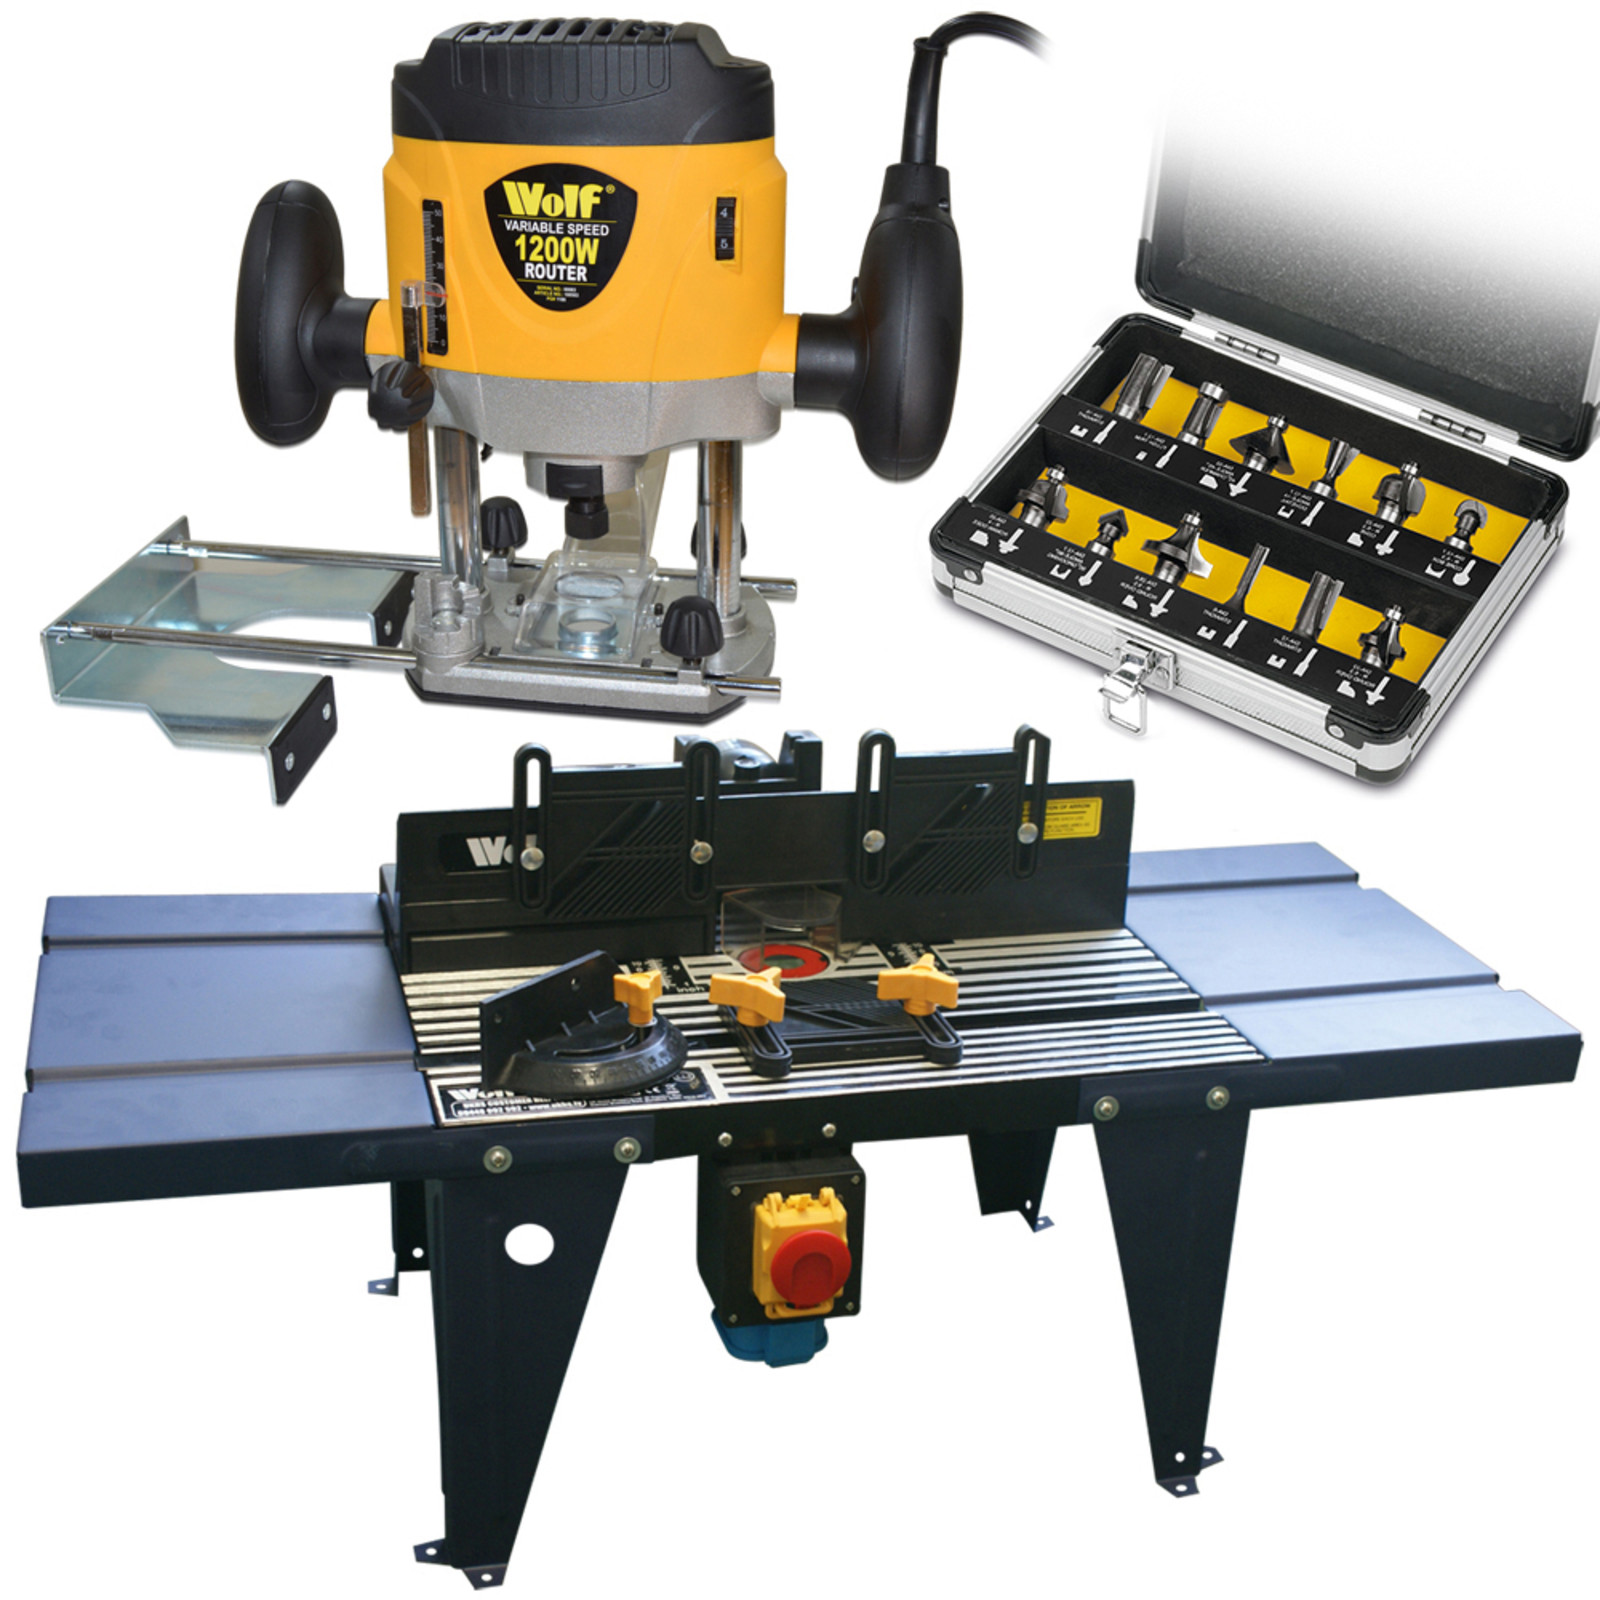 Wolf 1200w plunge router router table 12pc bit kit ukhs click on the image to enlarge greentooth Images